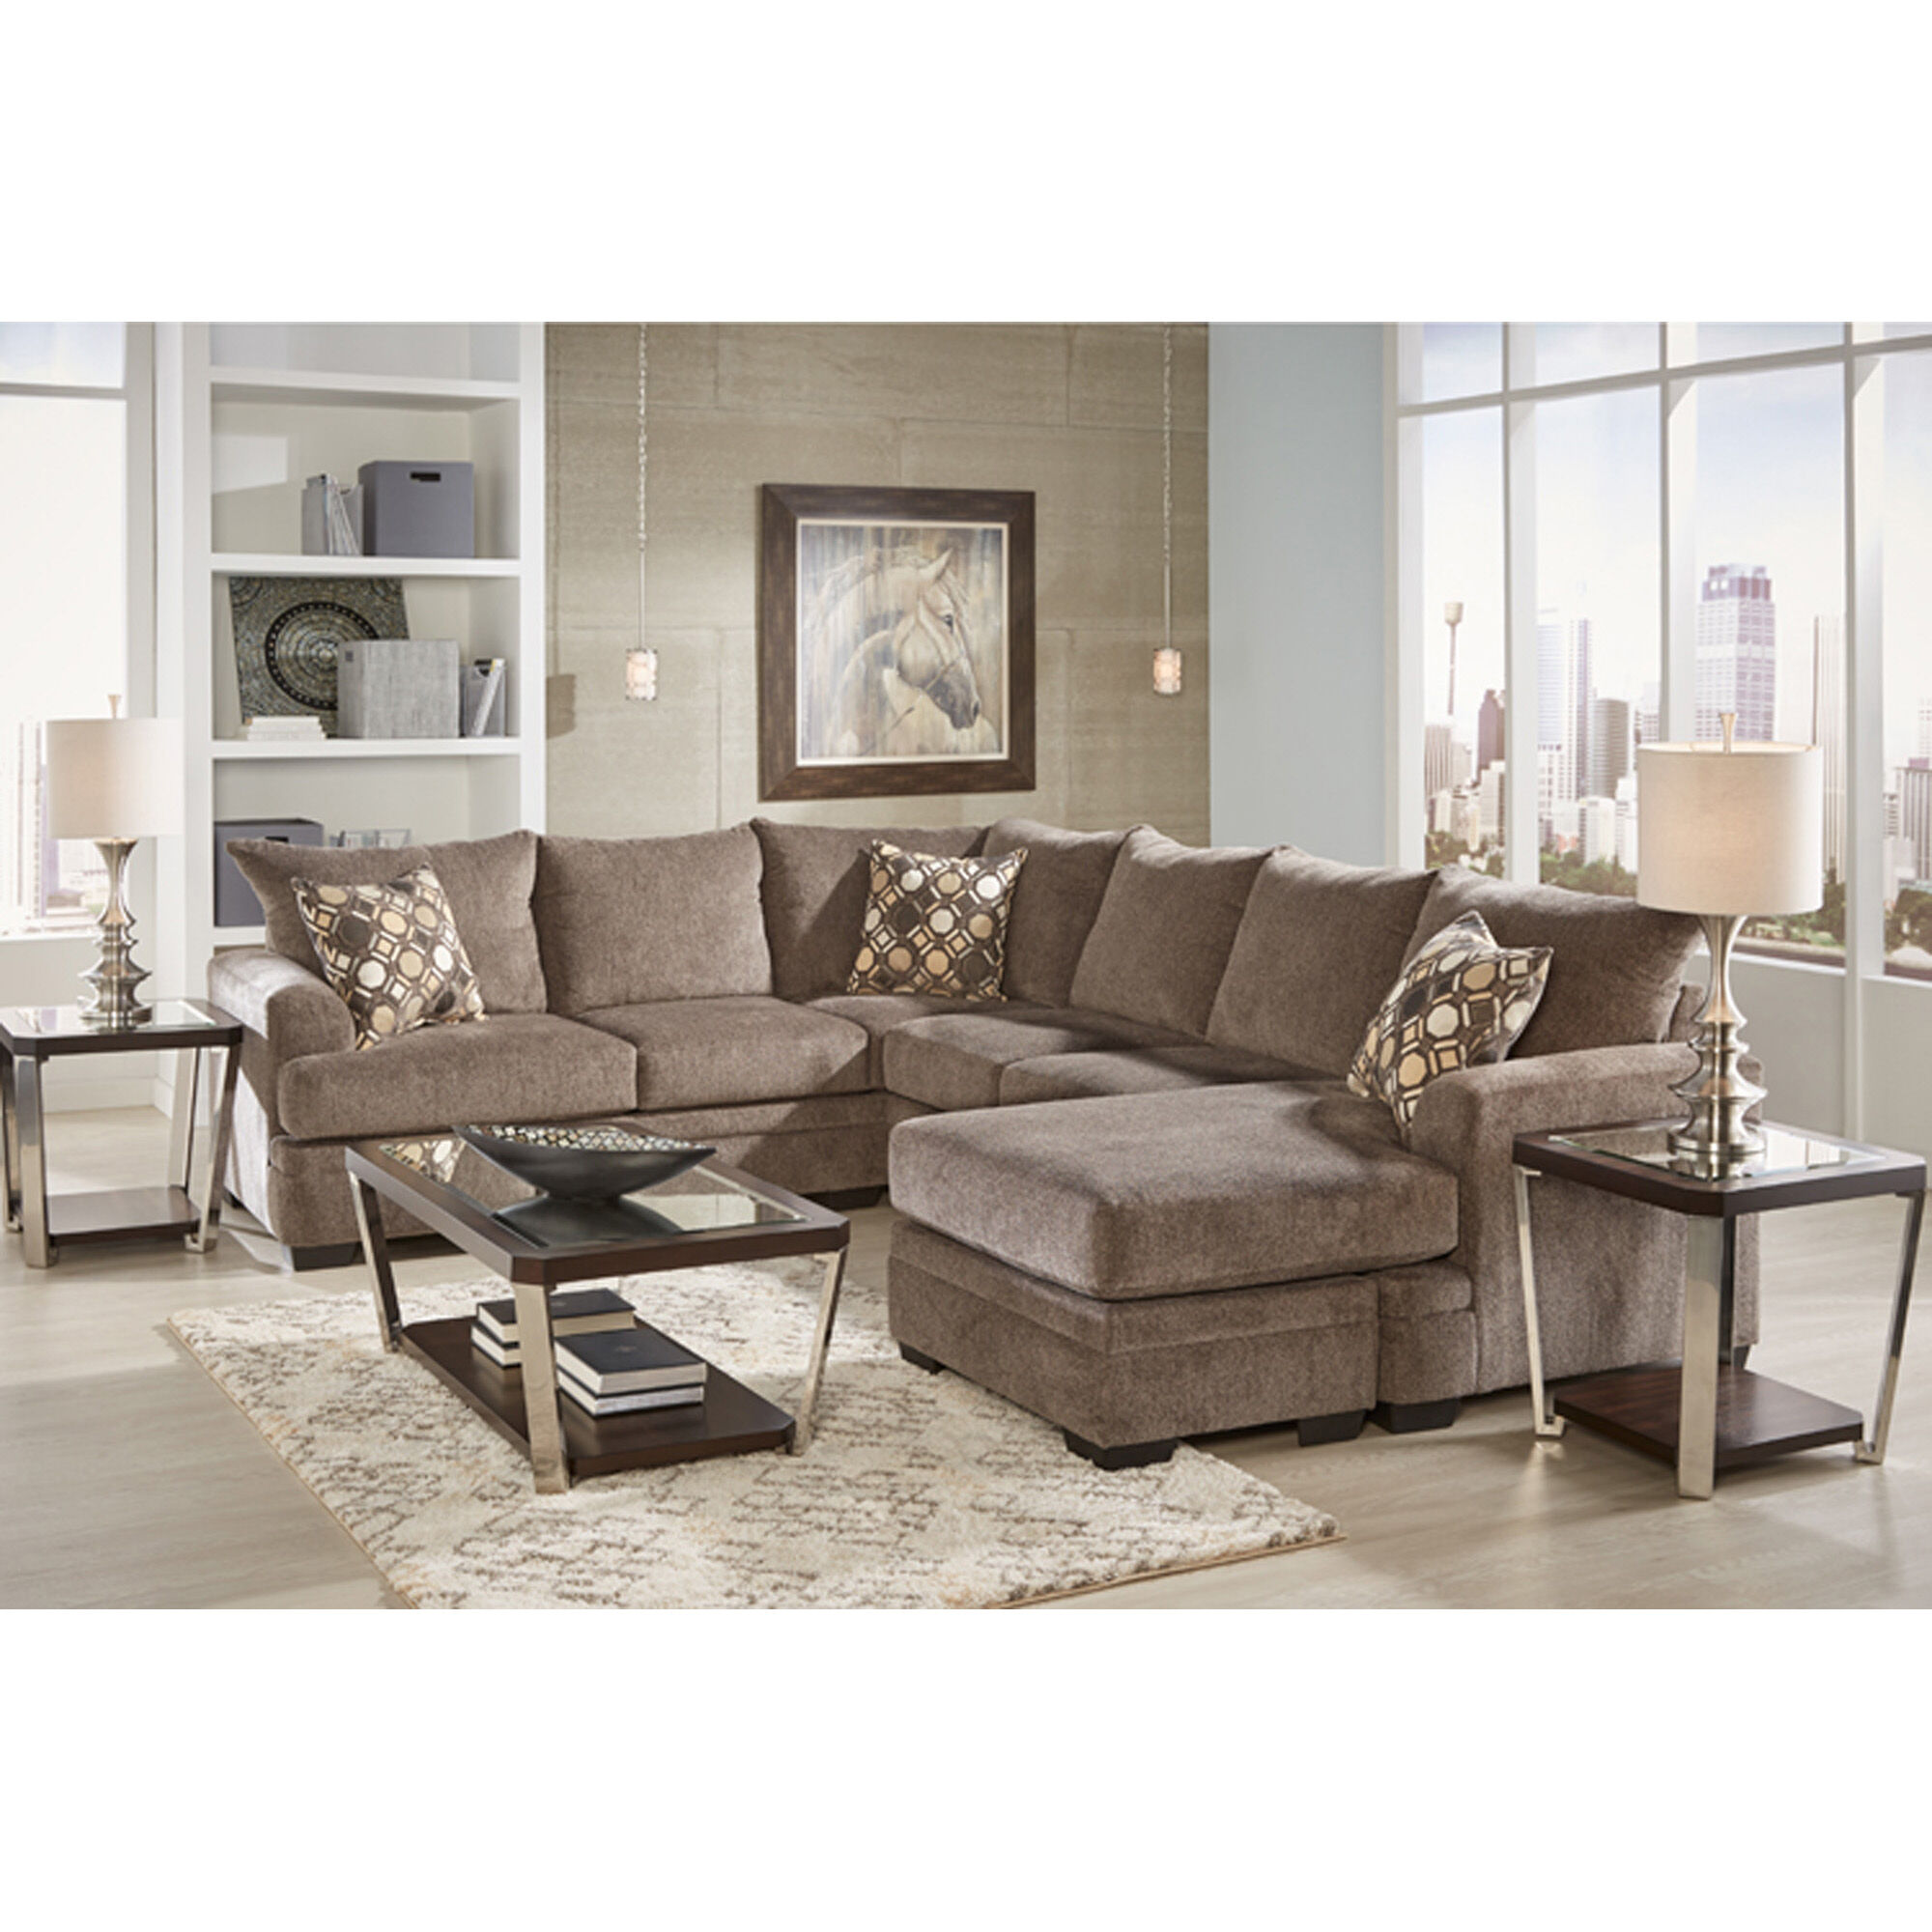 225 & 7-Piece Kimberly Sectional Living Room Collection